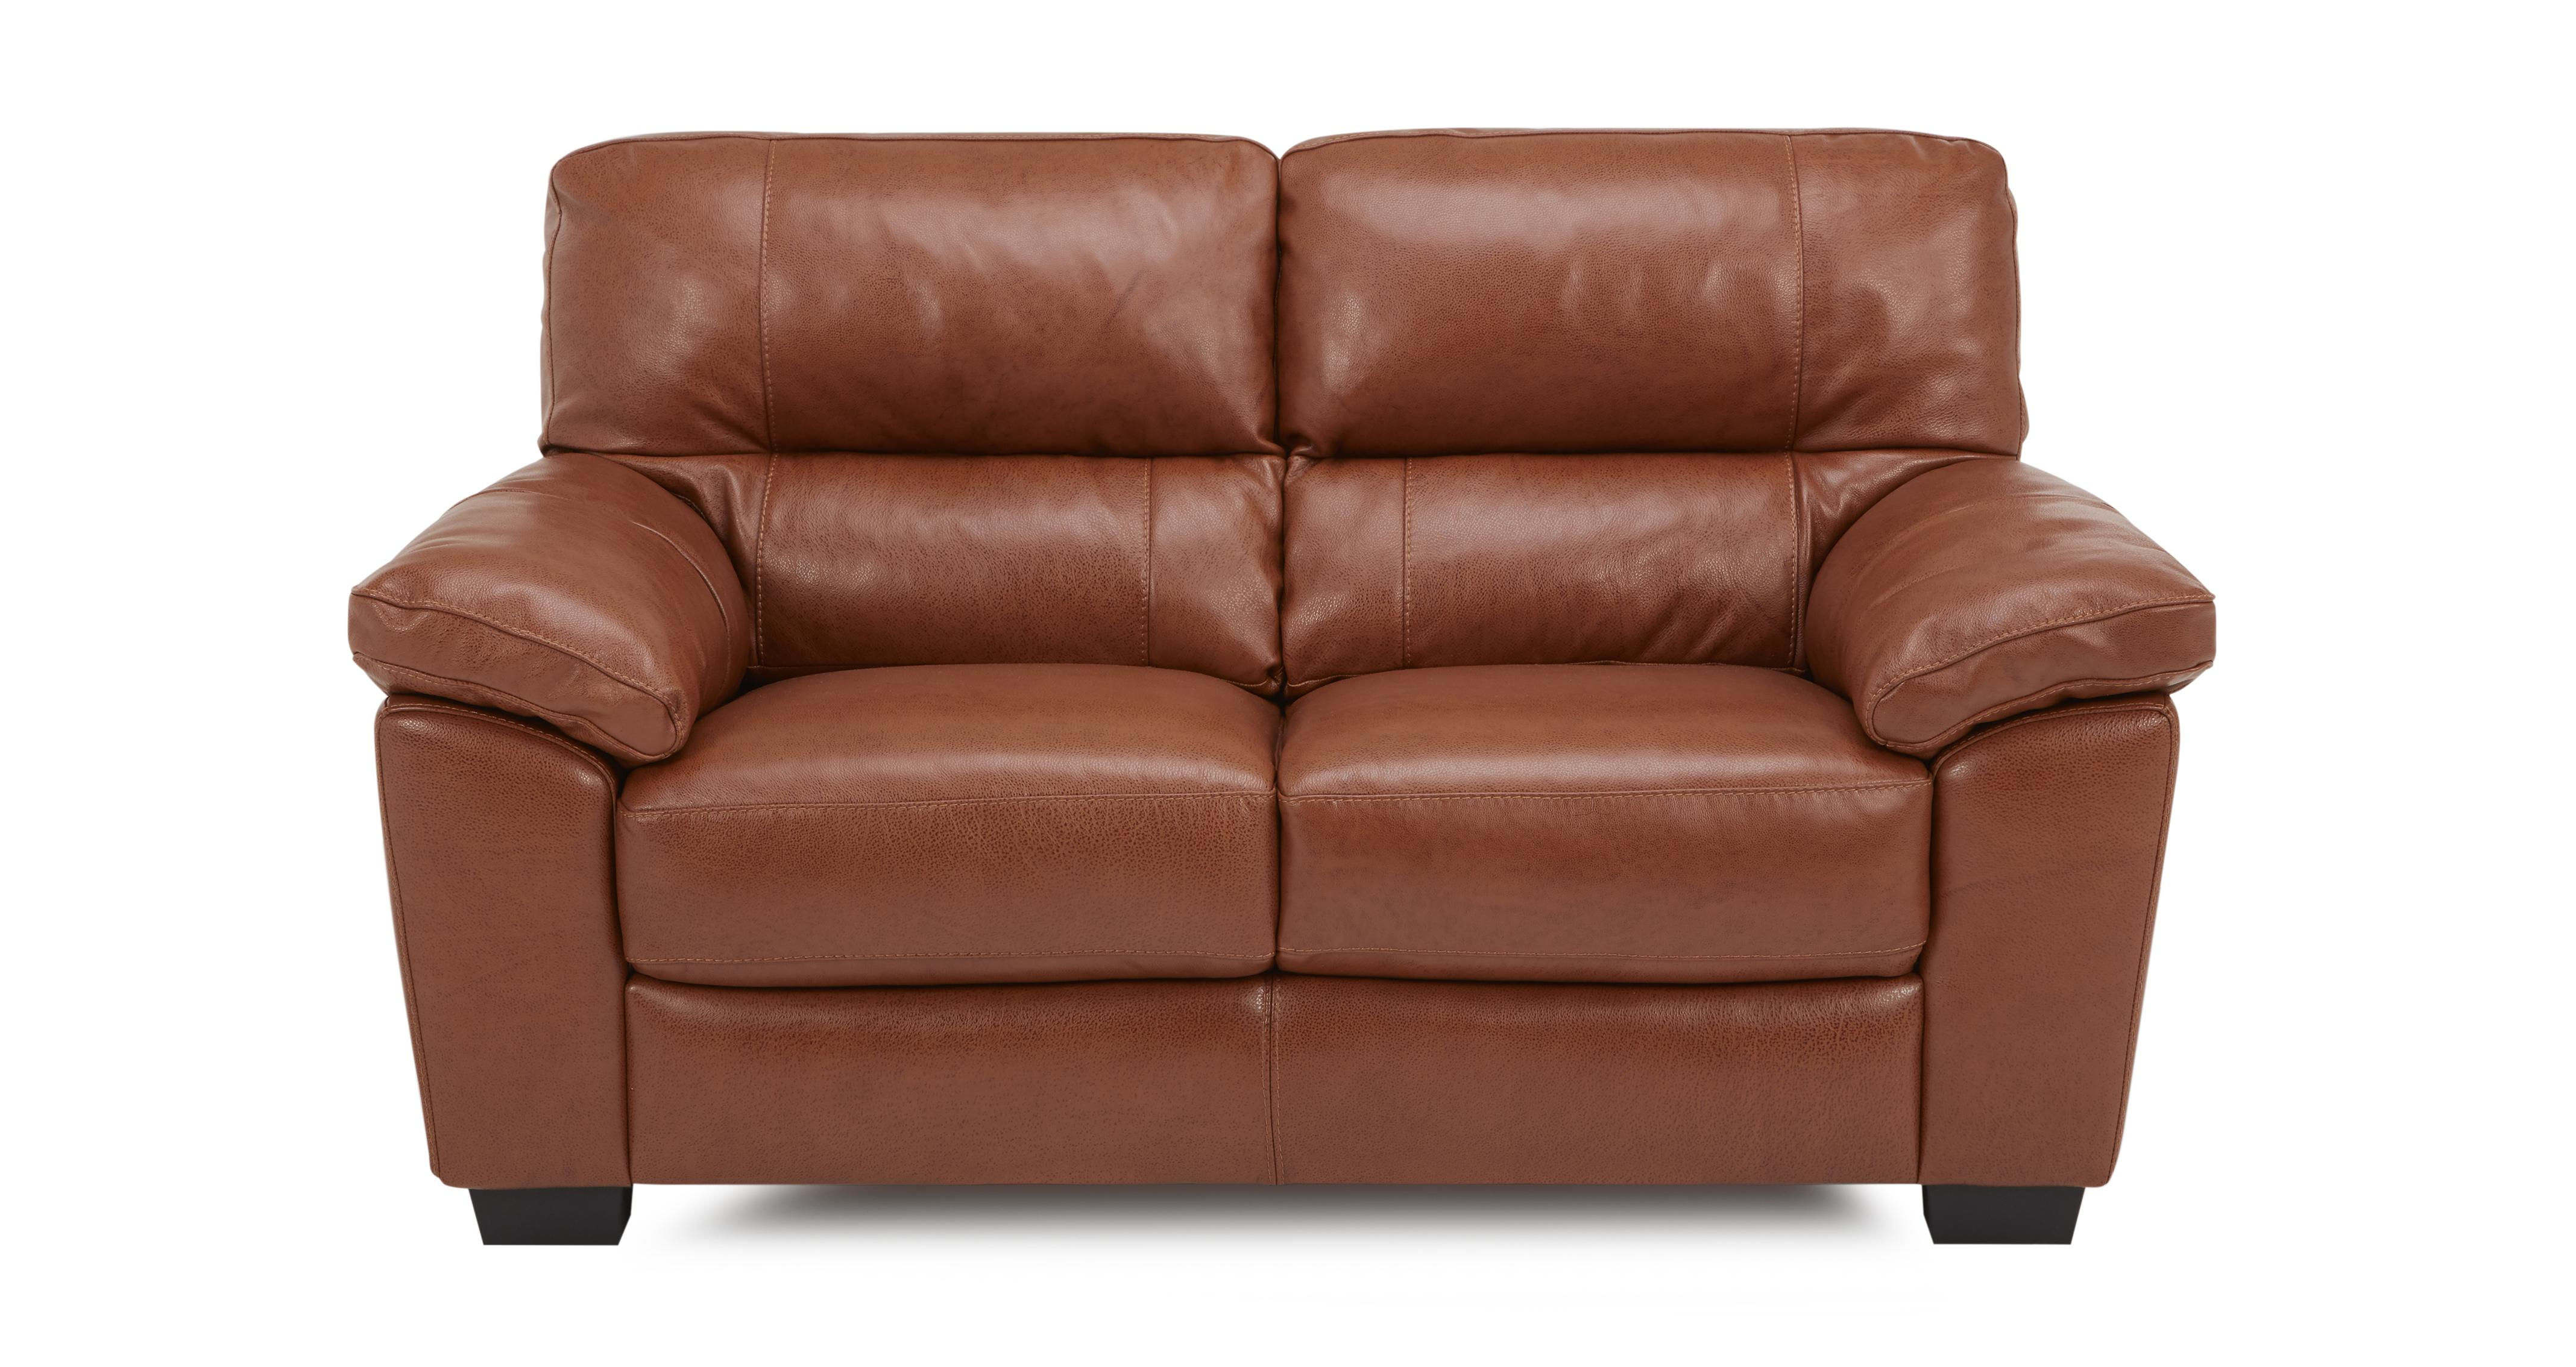 Dalmore 2 Seater Sofa Brazil With Leather Look Fabric